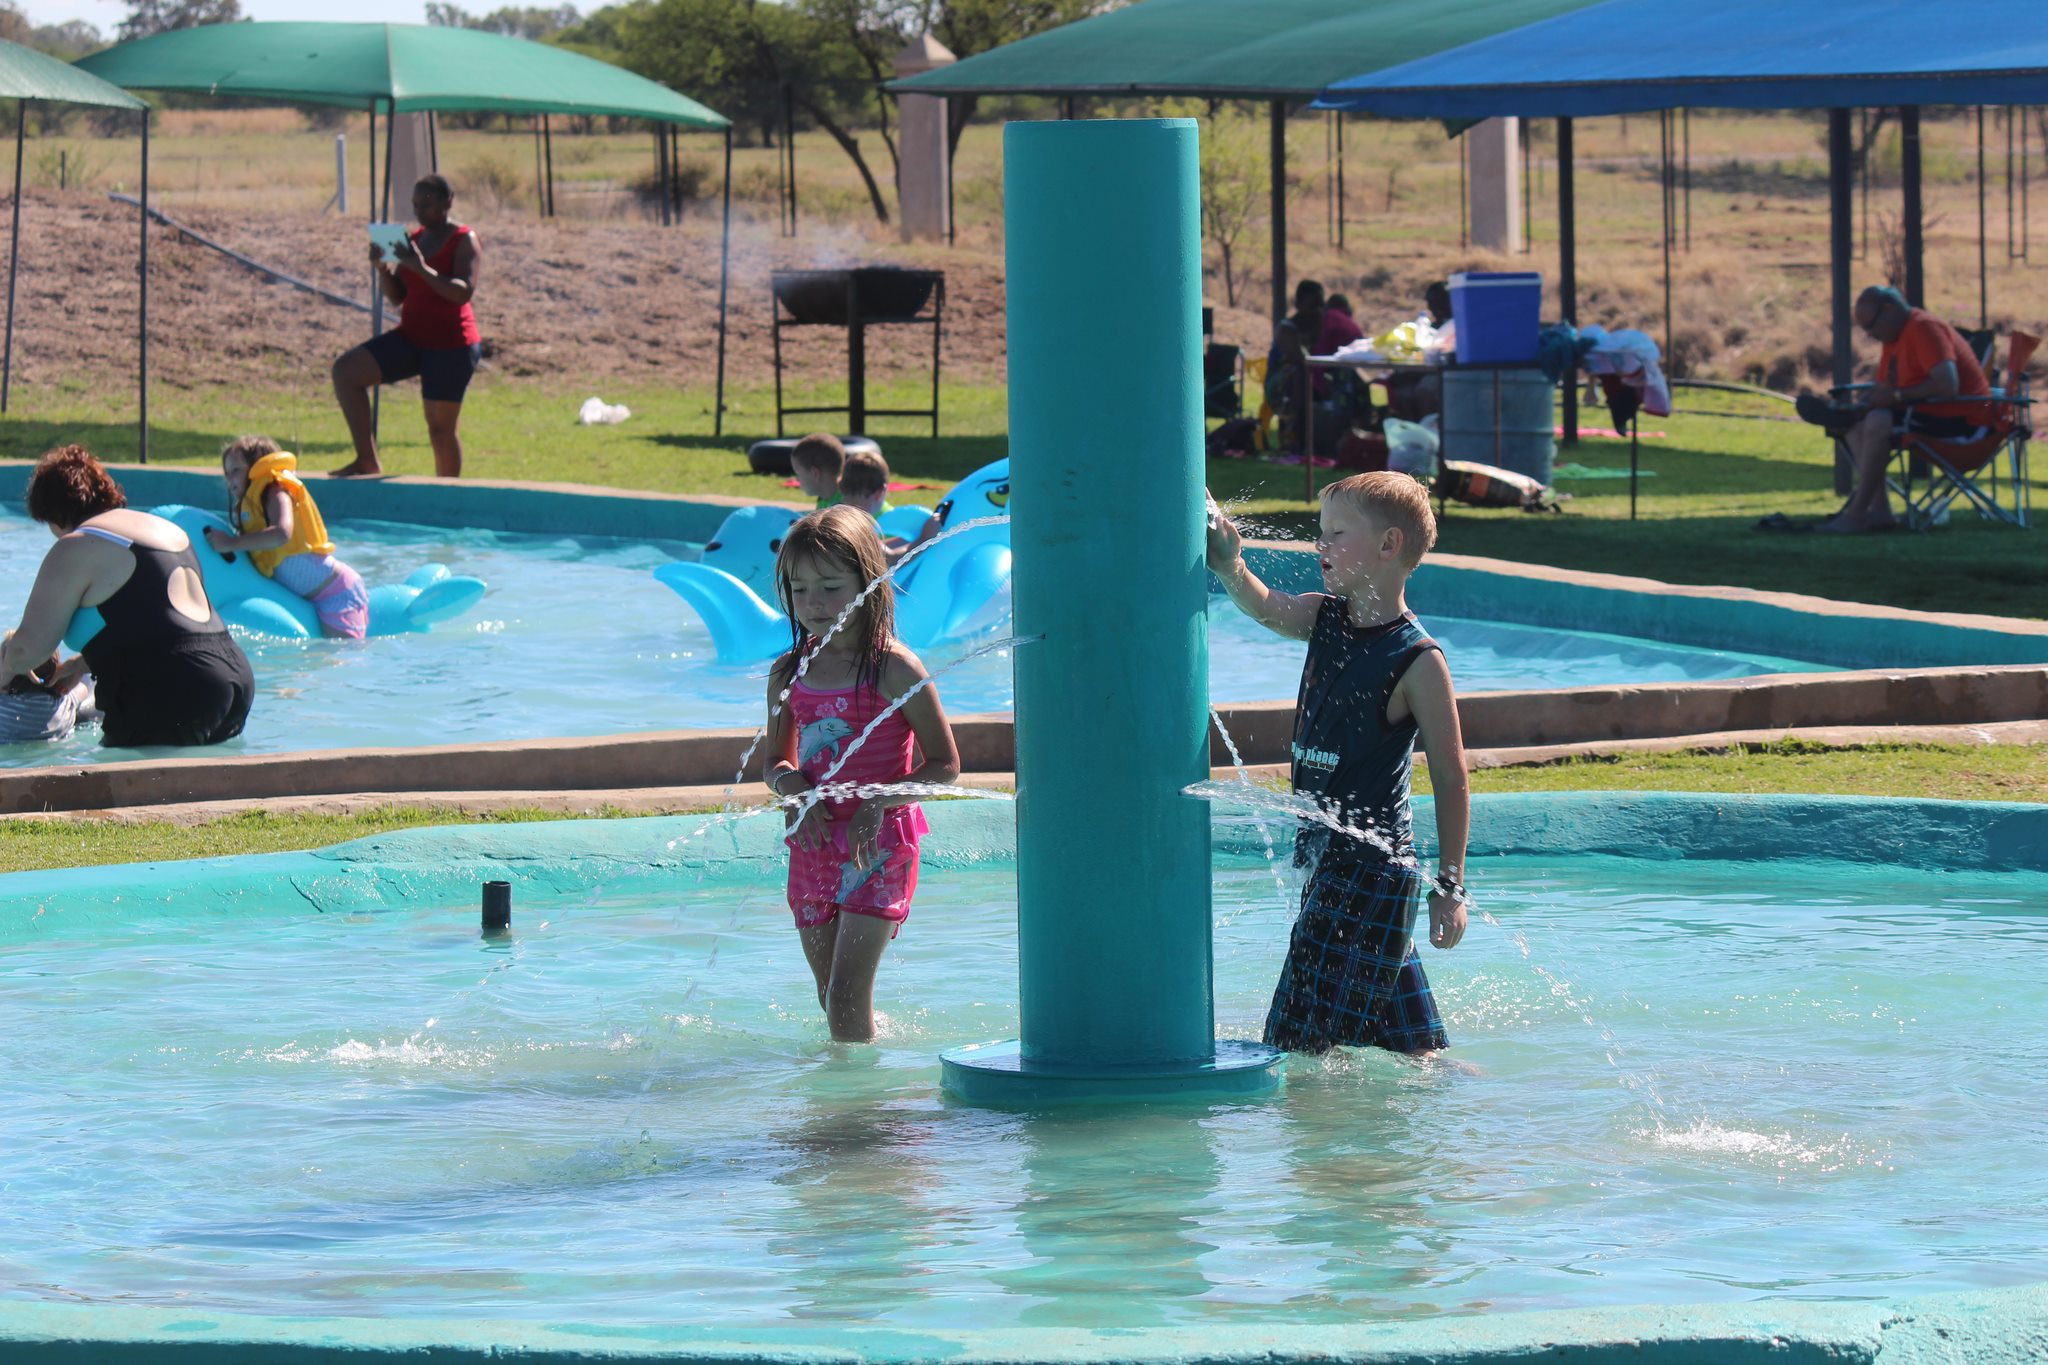 Gwen bali water world summer fun for the whole family bfn tourism for Southern suburbs swimming pool